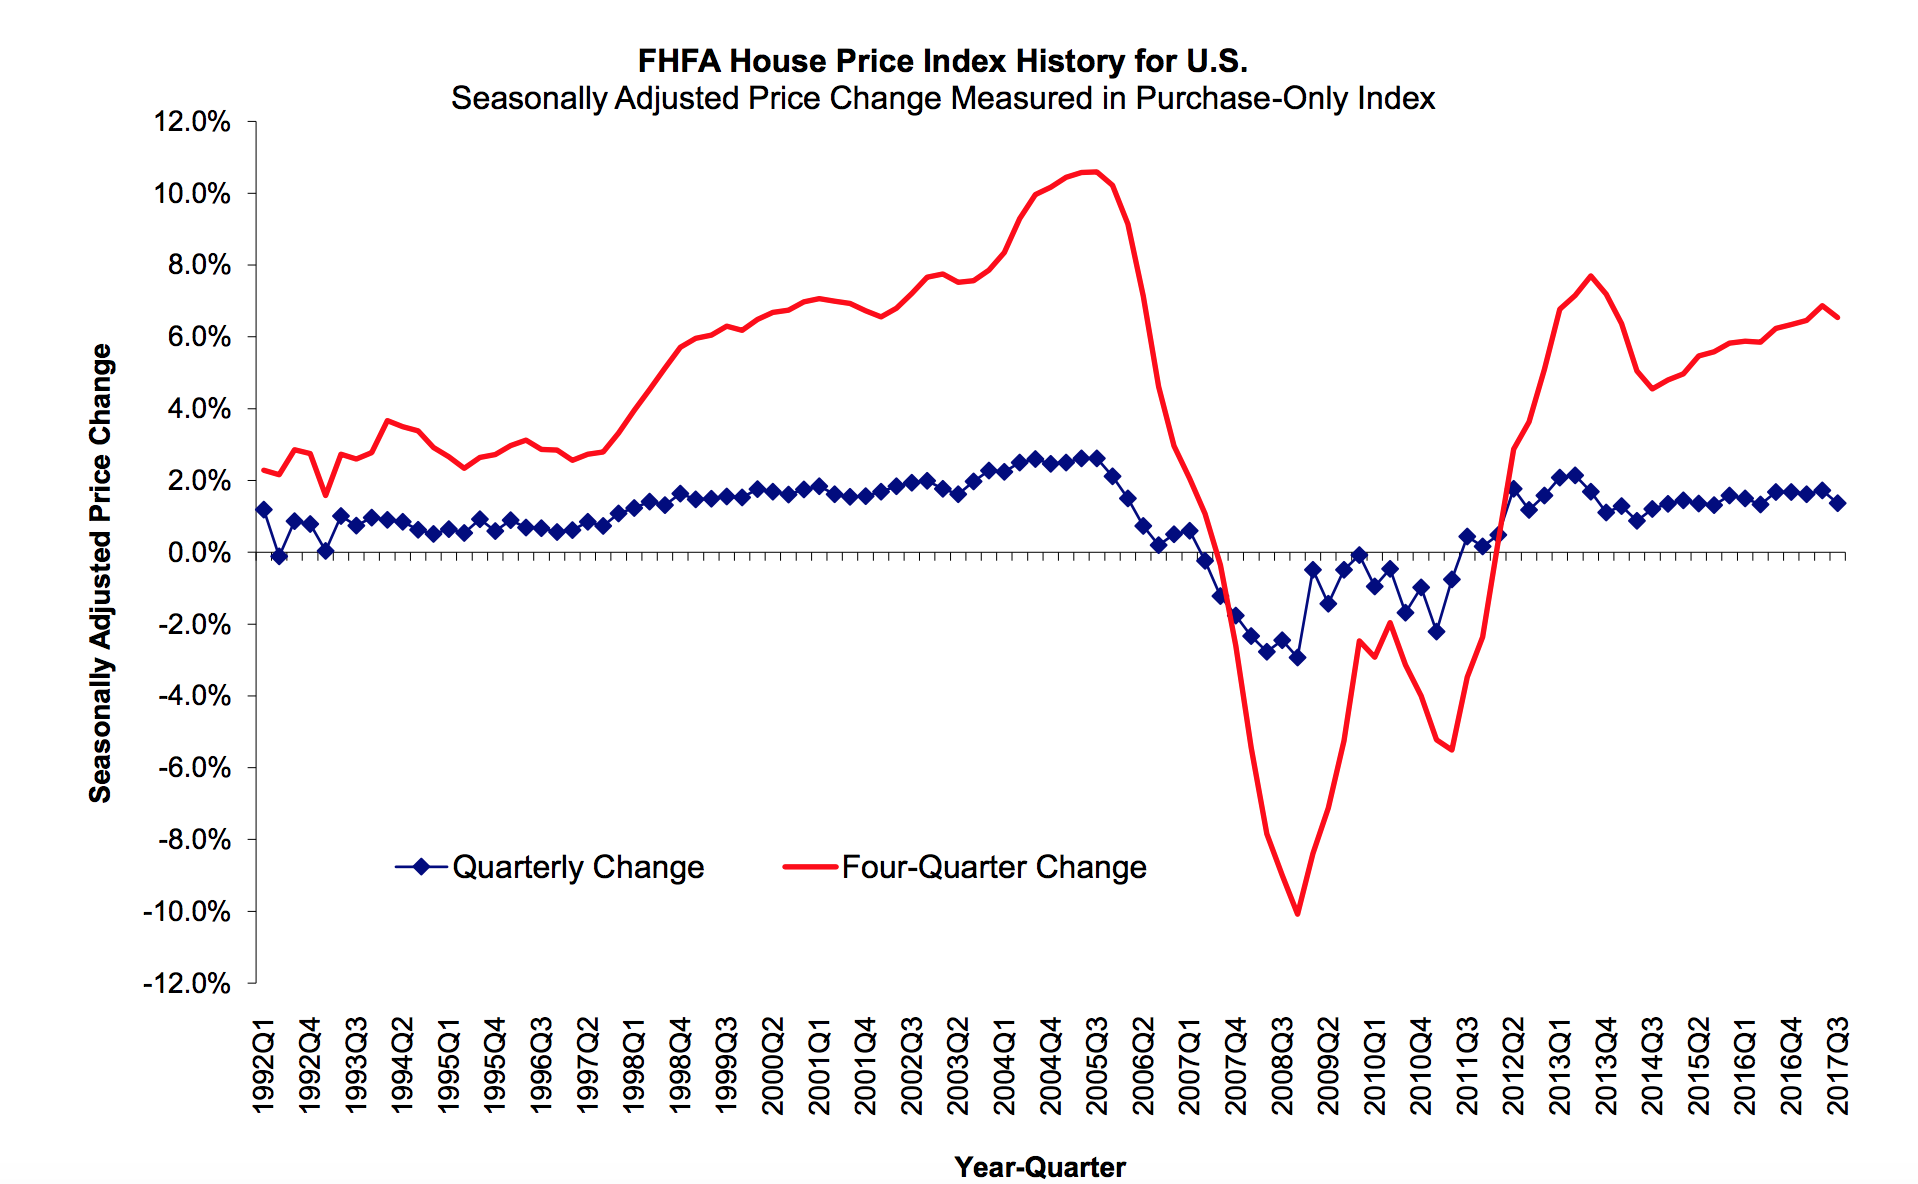 FHFA reports home price increase of 1.4% for Q3